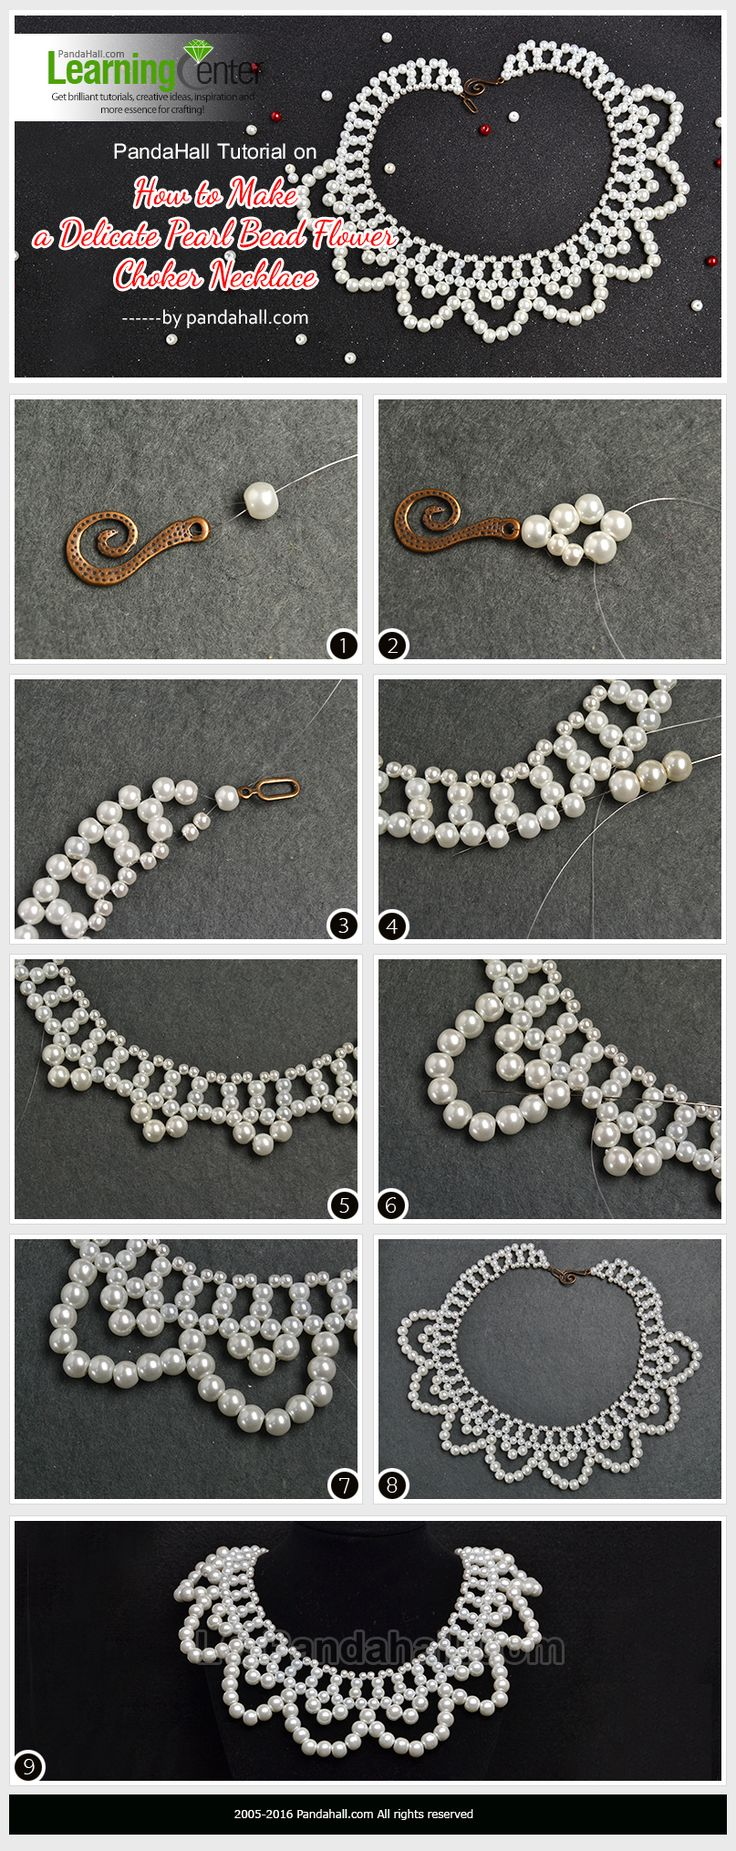 PandaHall Tutorial on How to Make a Delicate Pearl Bead Flower Choker Necklace from LC.Pandahall.com